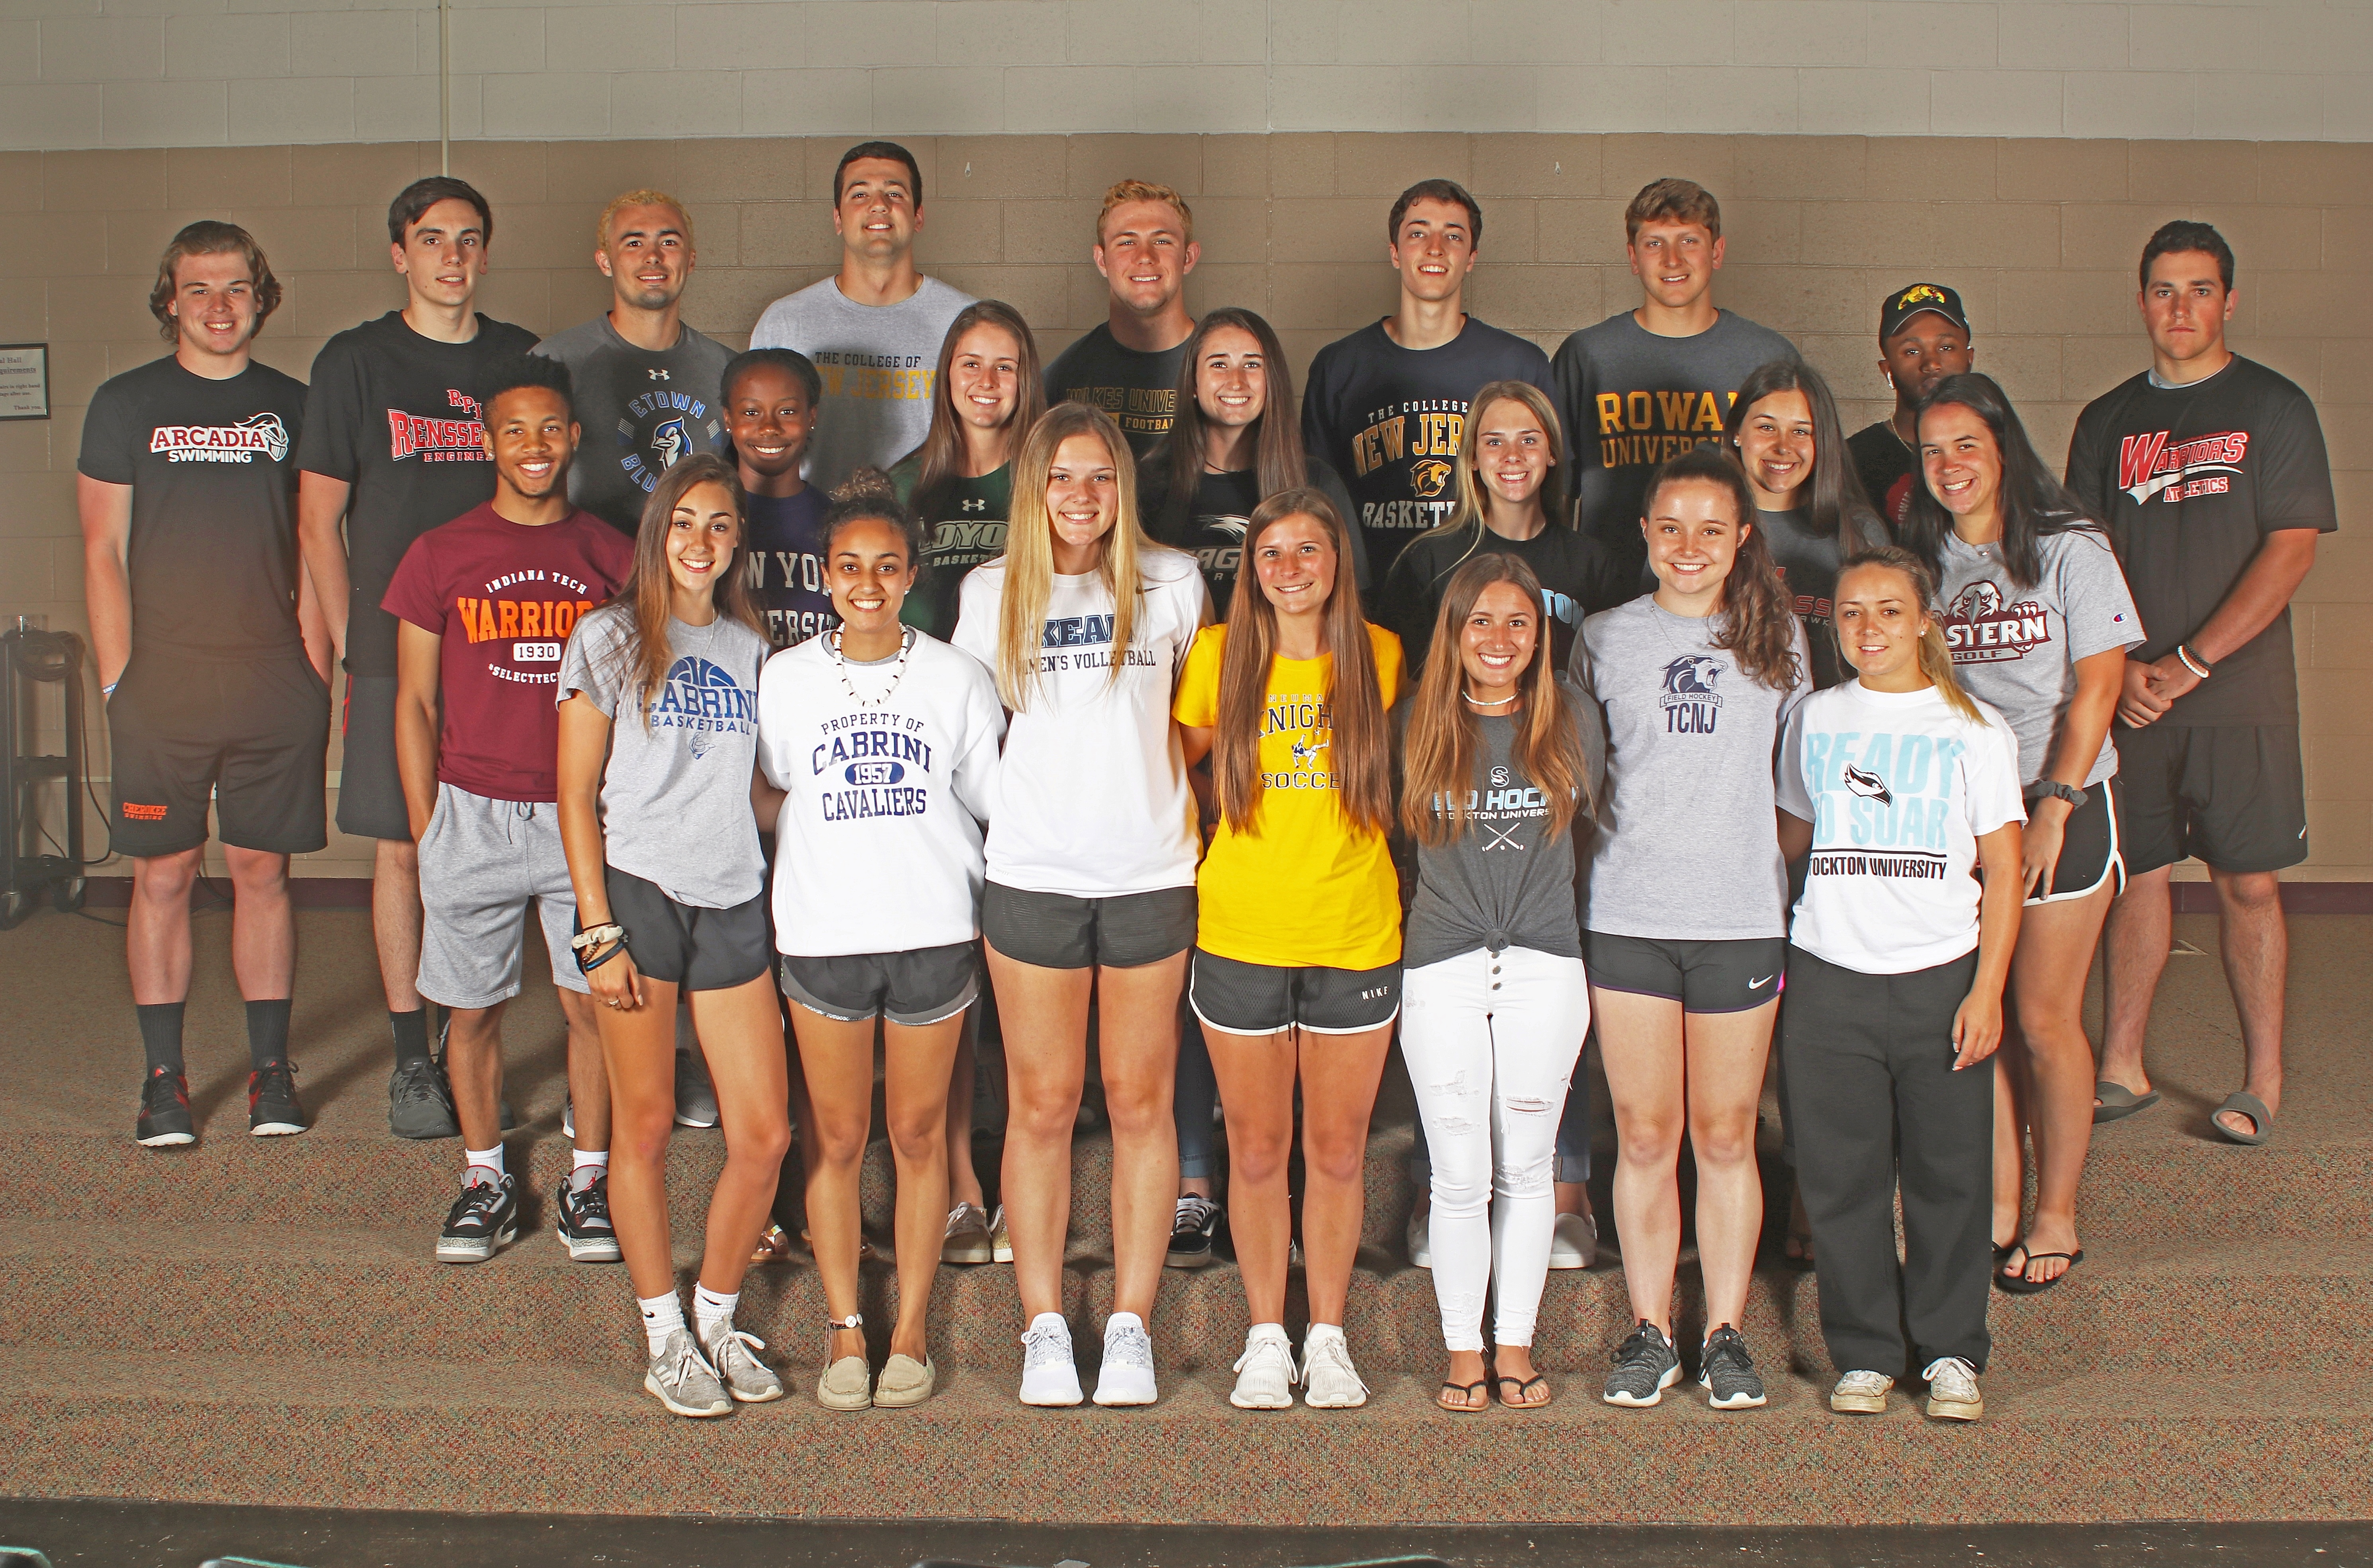 53 graduates of Cherokee High School will be pursuing athletics at the collegiate level.